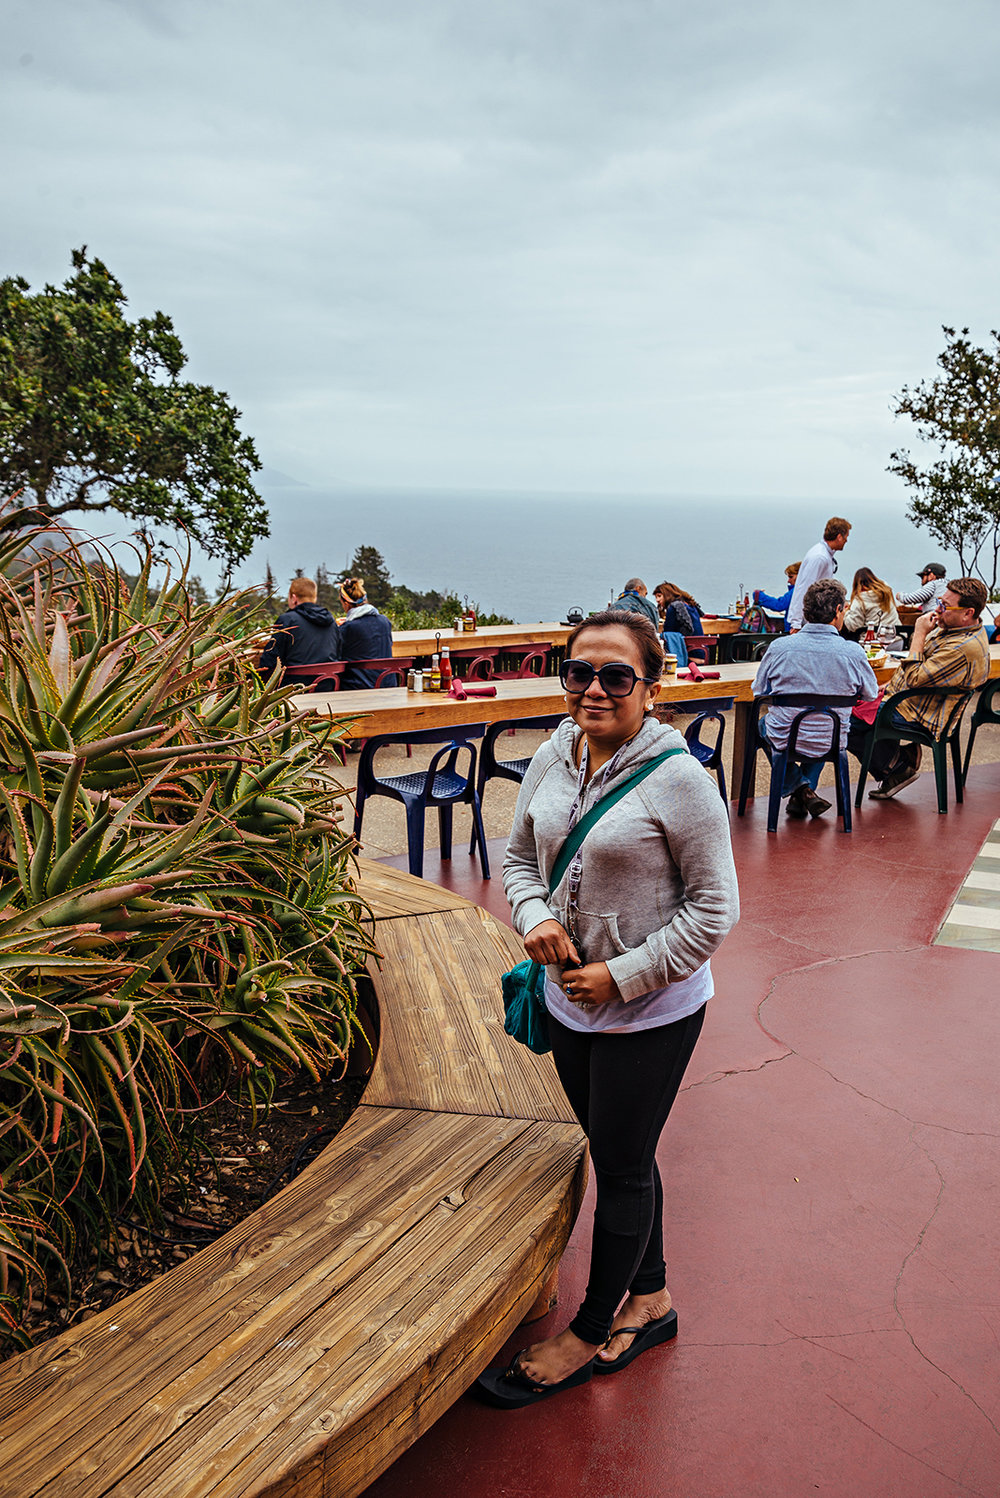 Nepenthe Restaurant Big Sur California Vacation Photography 2016